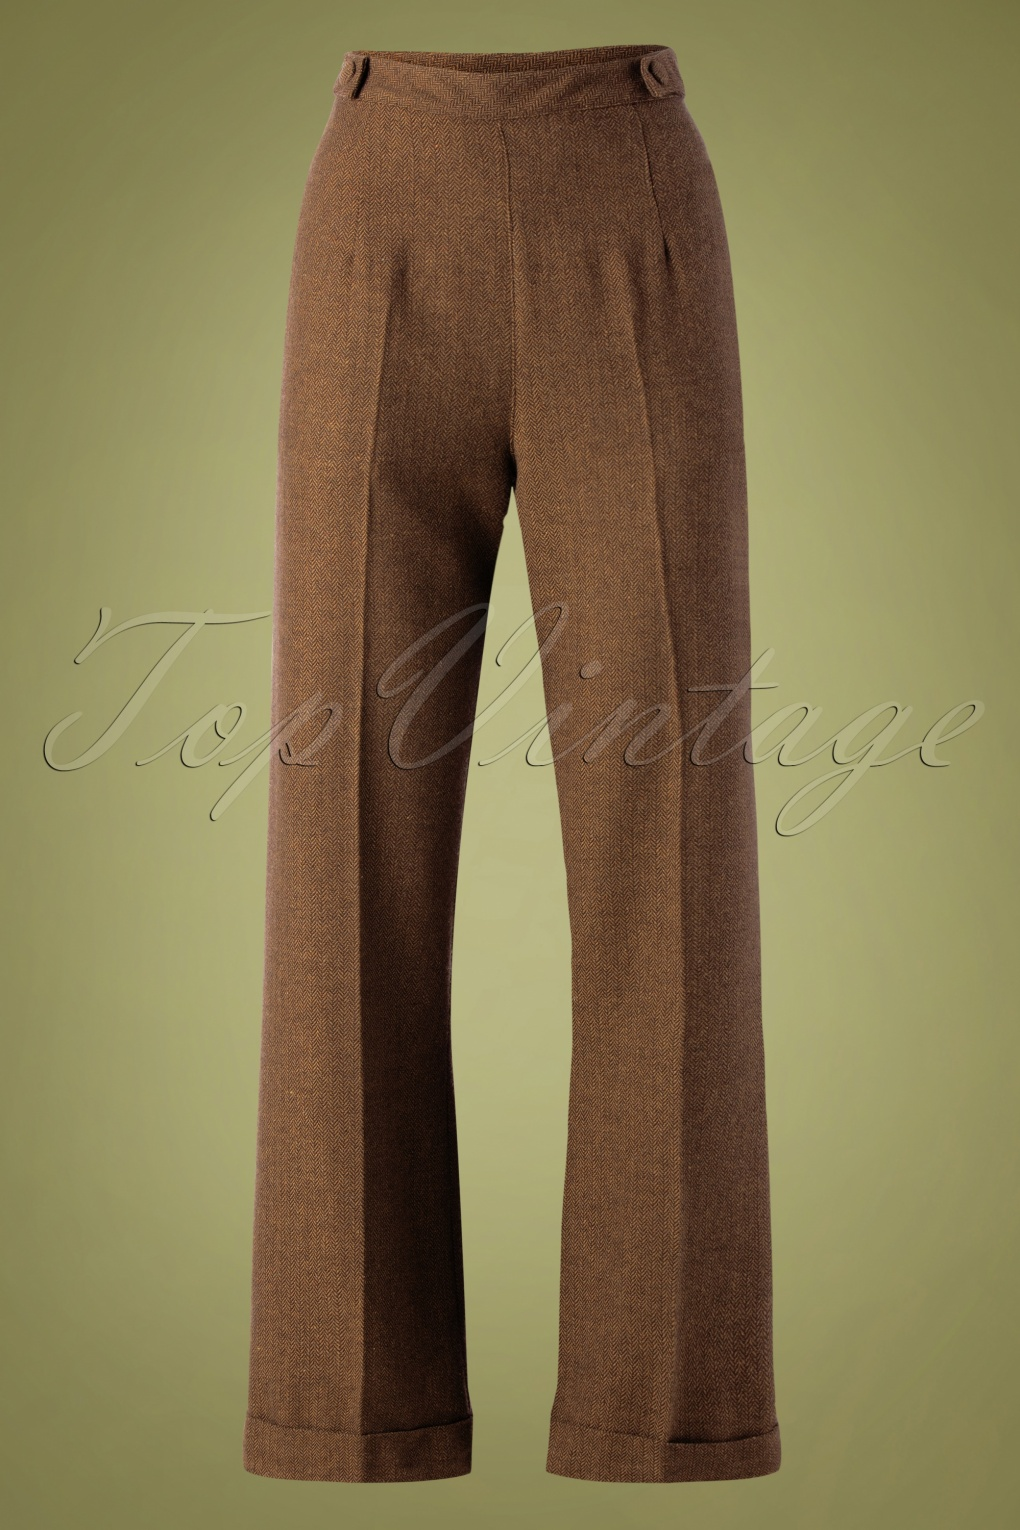 1940s Pants History- Overalls, Jeans, Sailor, Siren Suits 40s Work It Out Trousers in Brown £36.48 AT vintagedancer.com